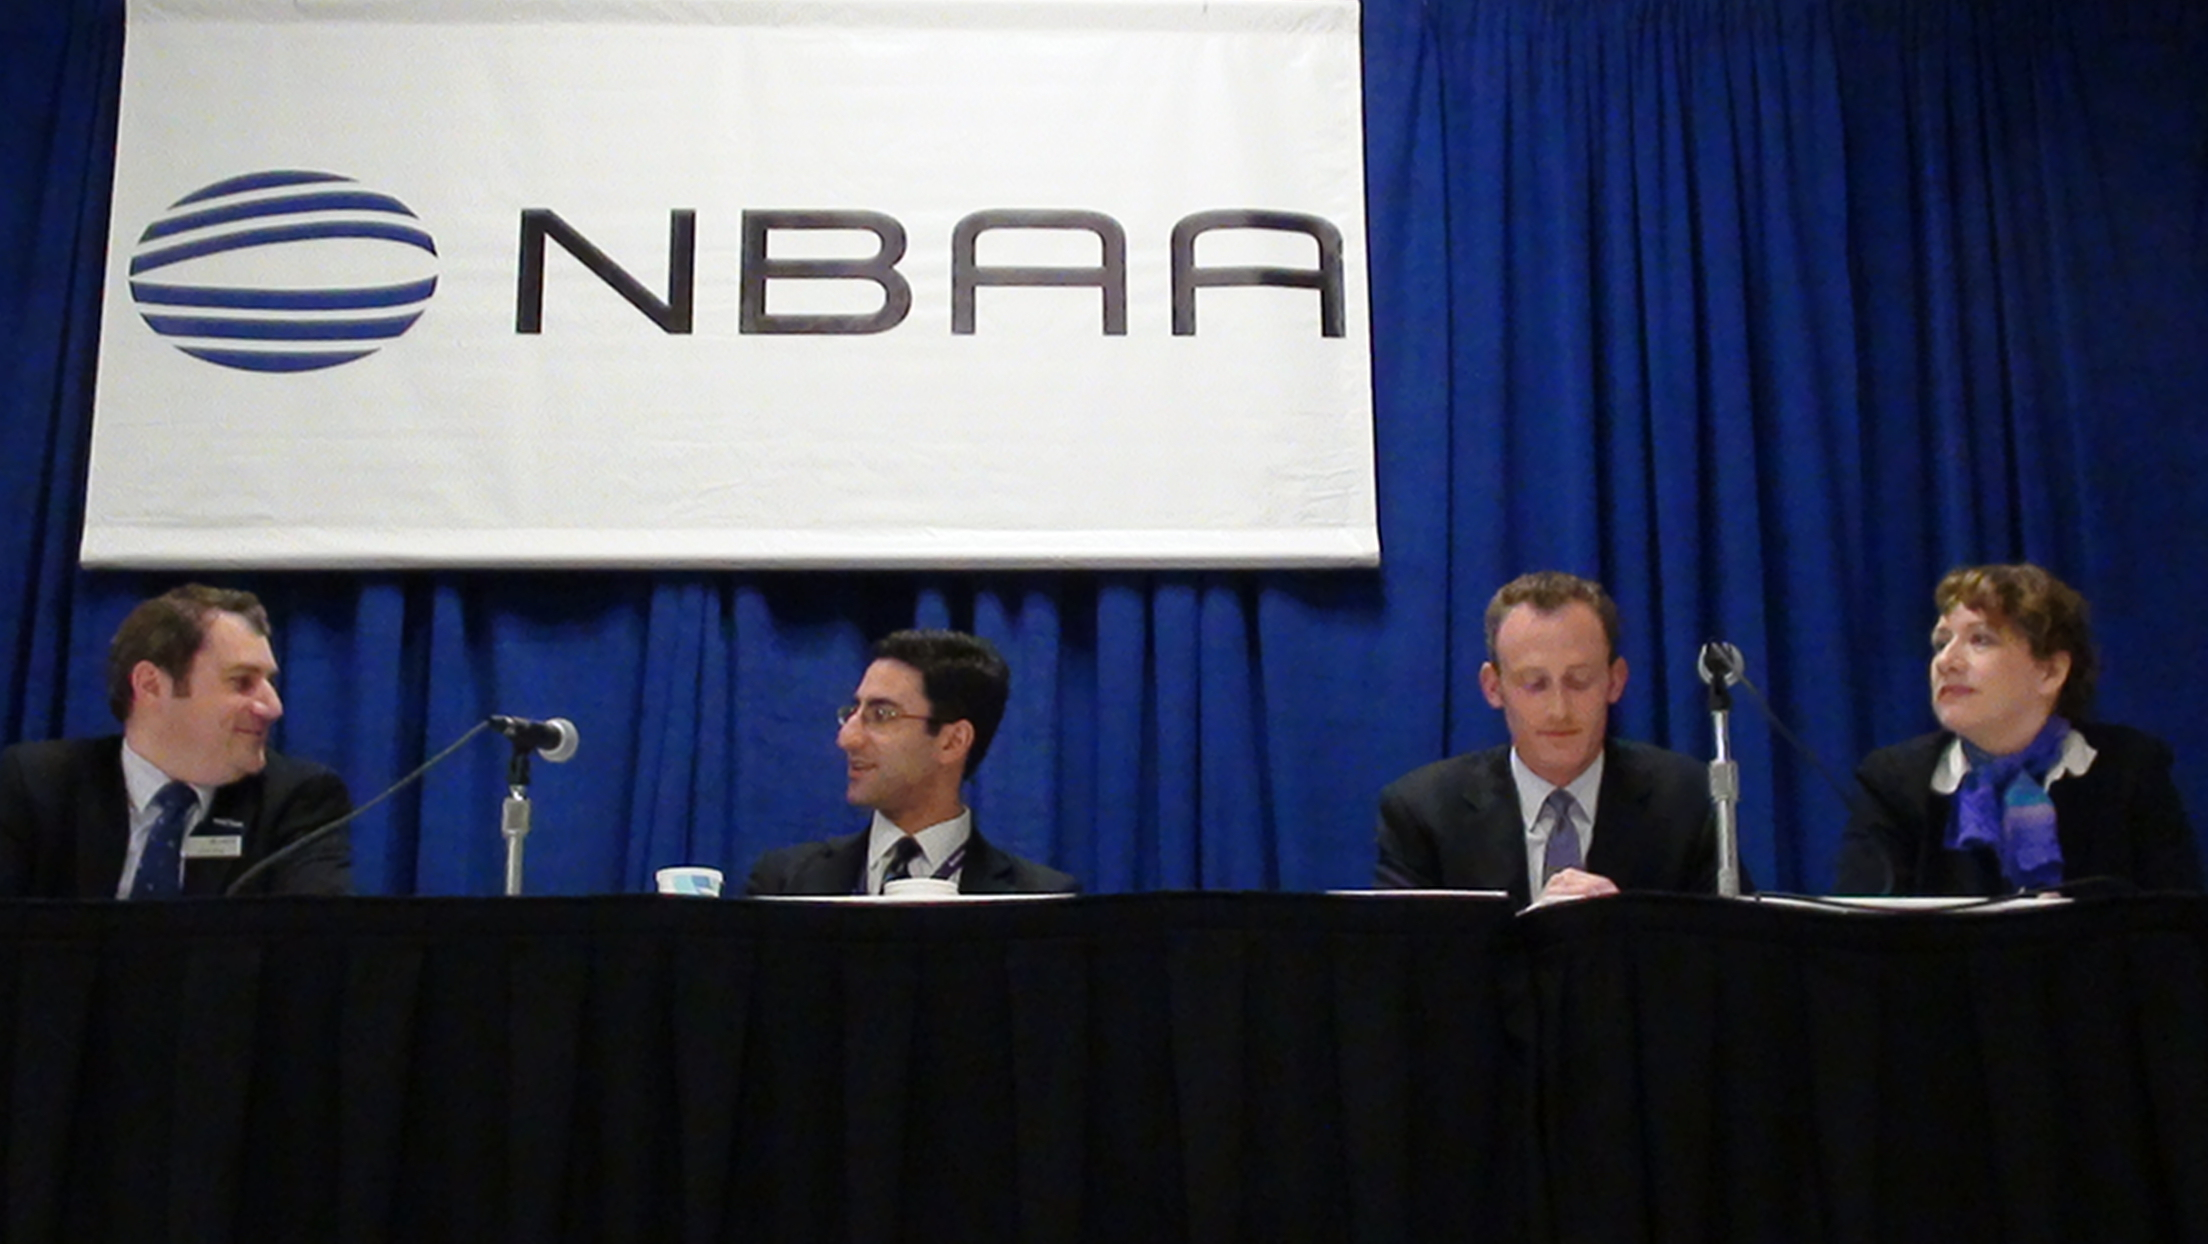 Needa speaker? NBAA convention